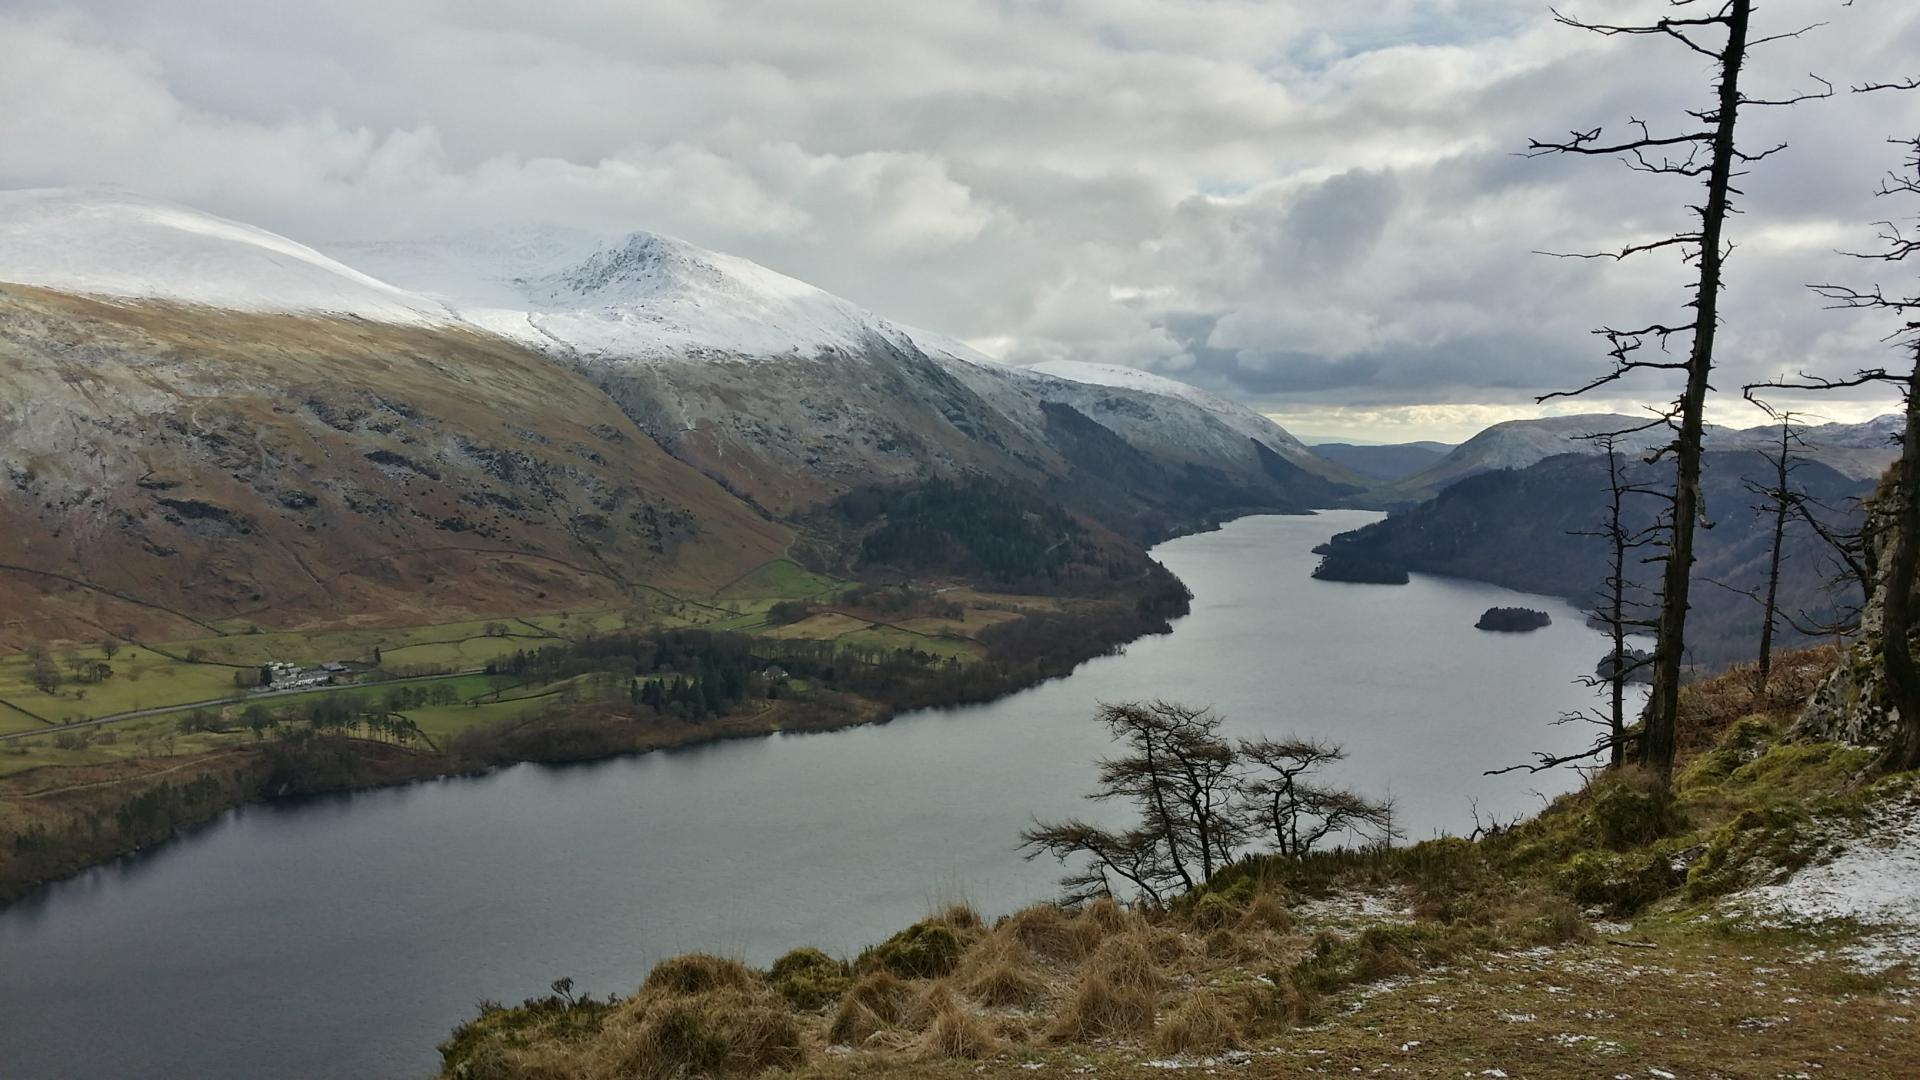 Stunning views of the man-made reservoir from Raven Crag